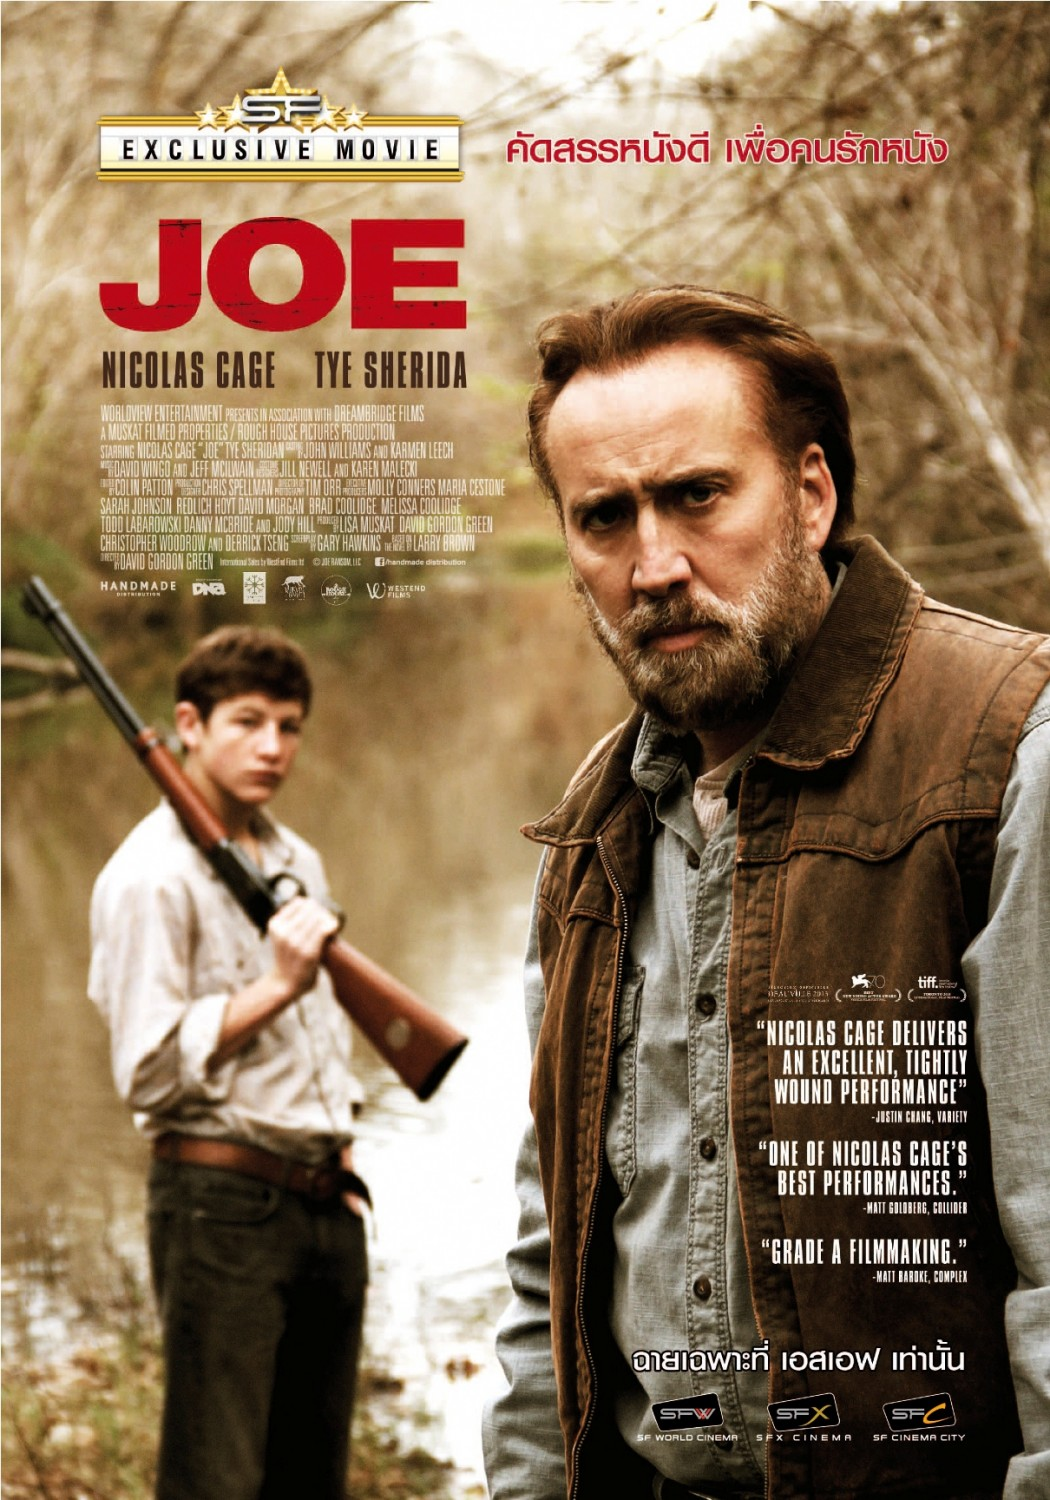 Nicolas cage current movie